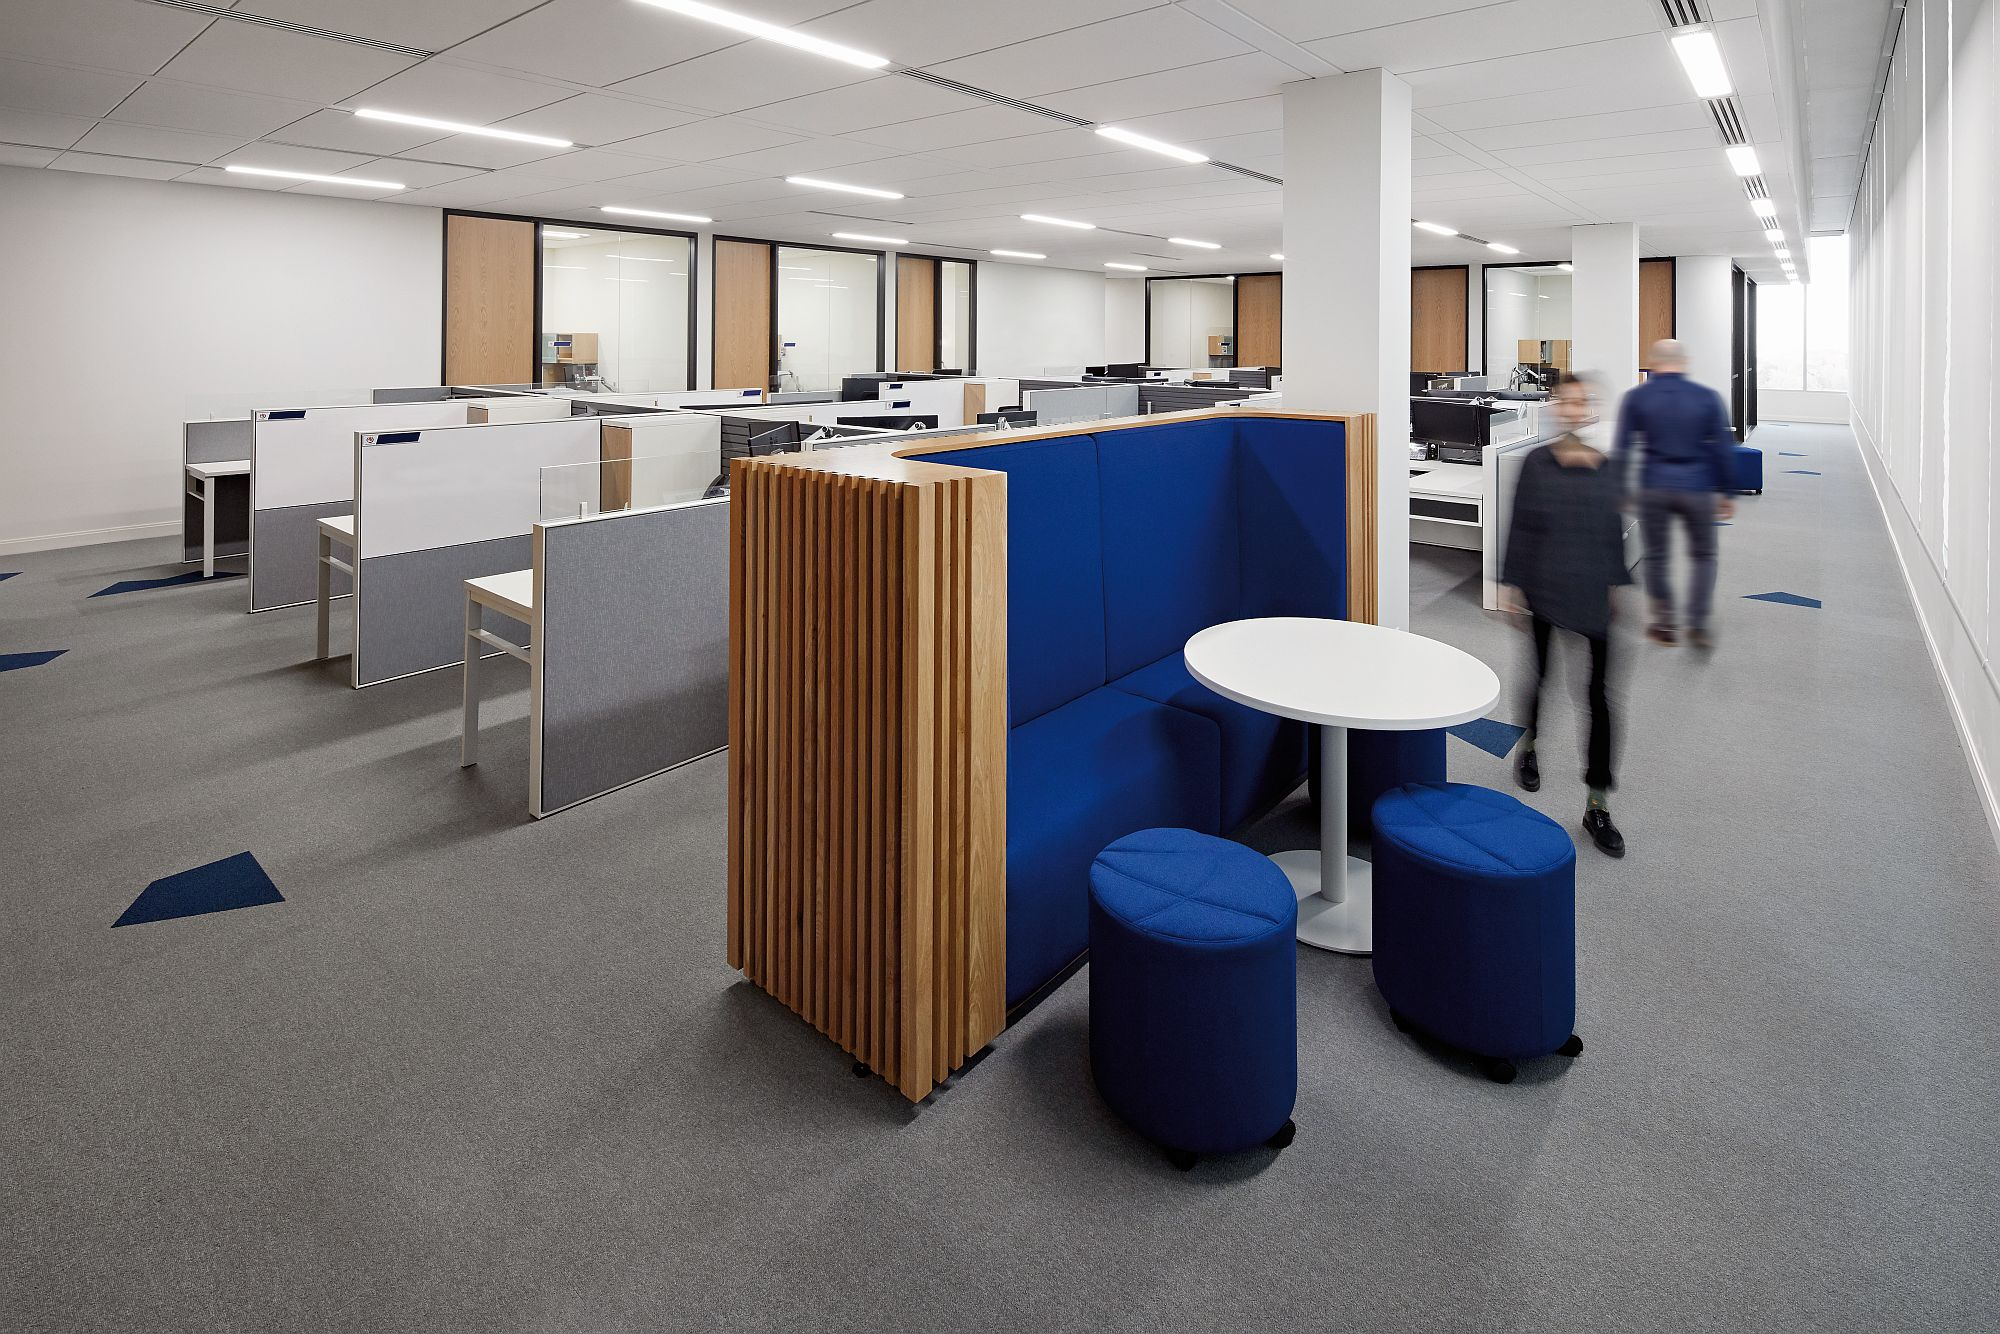 Clever partitions shape a private, yet open office environment